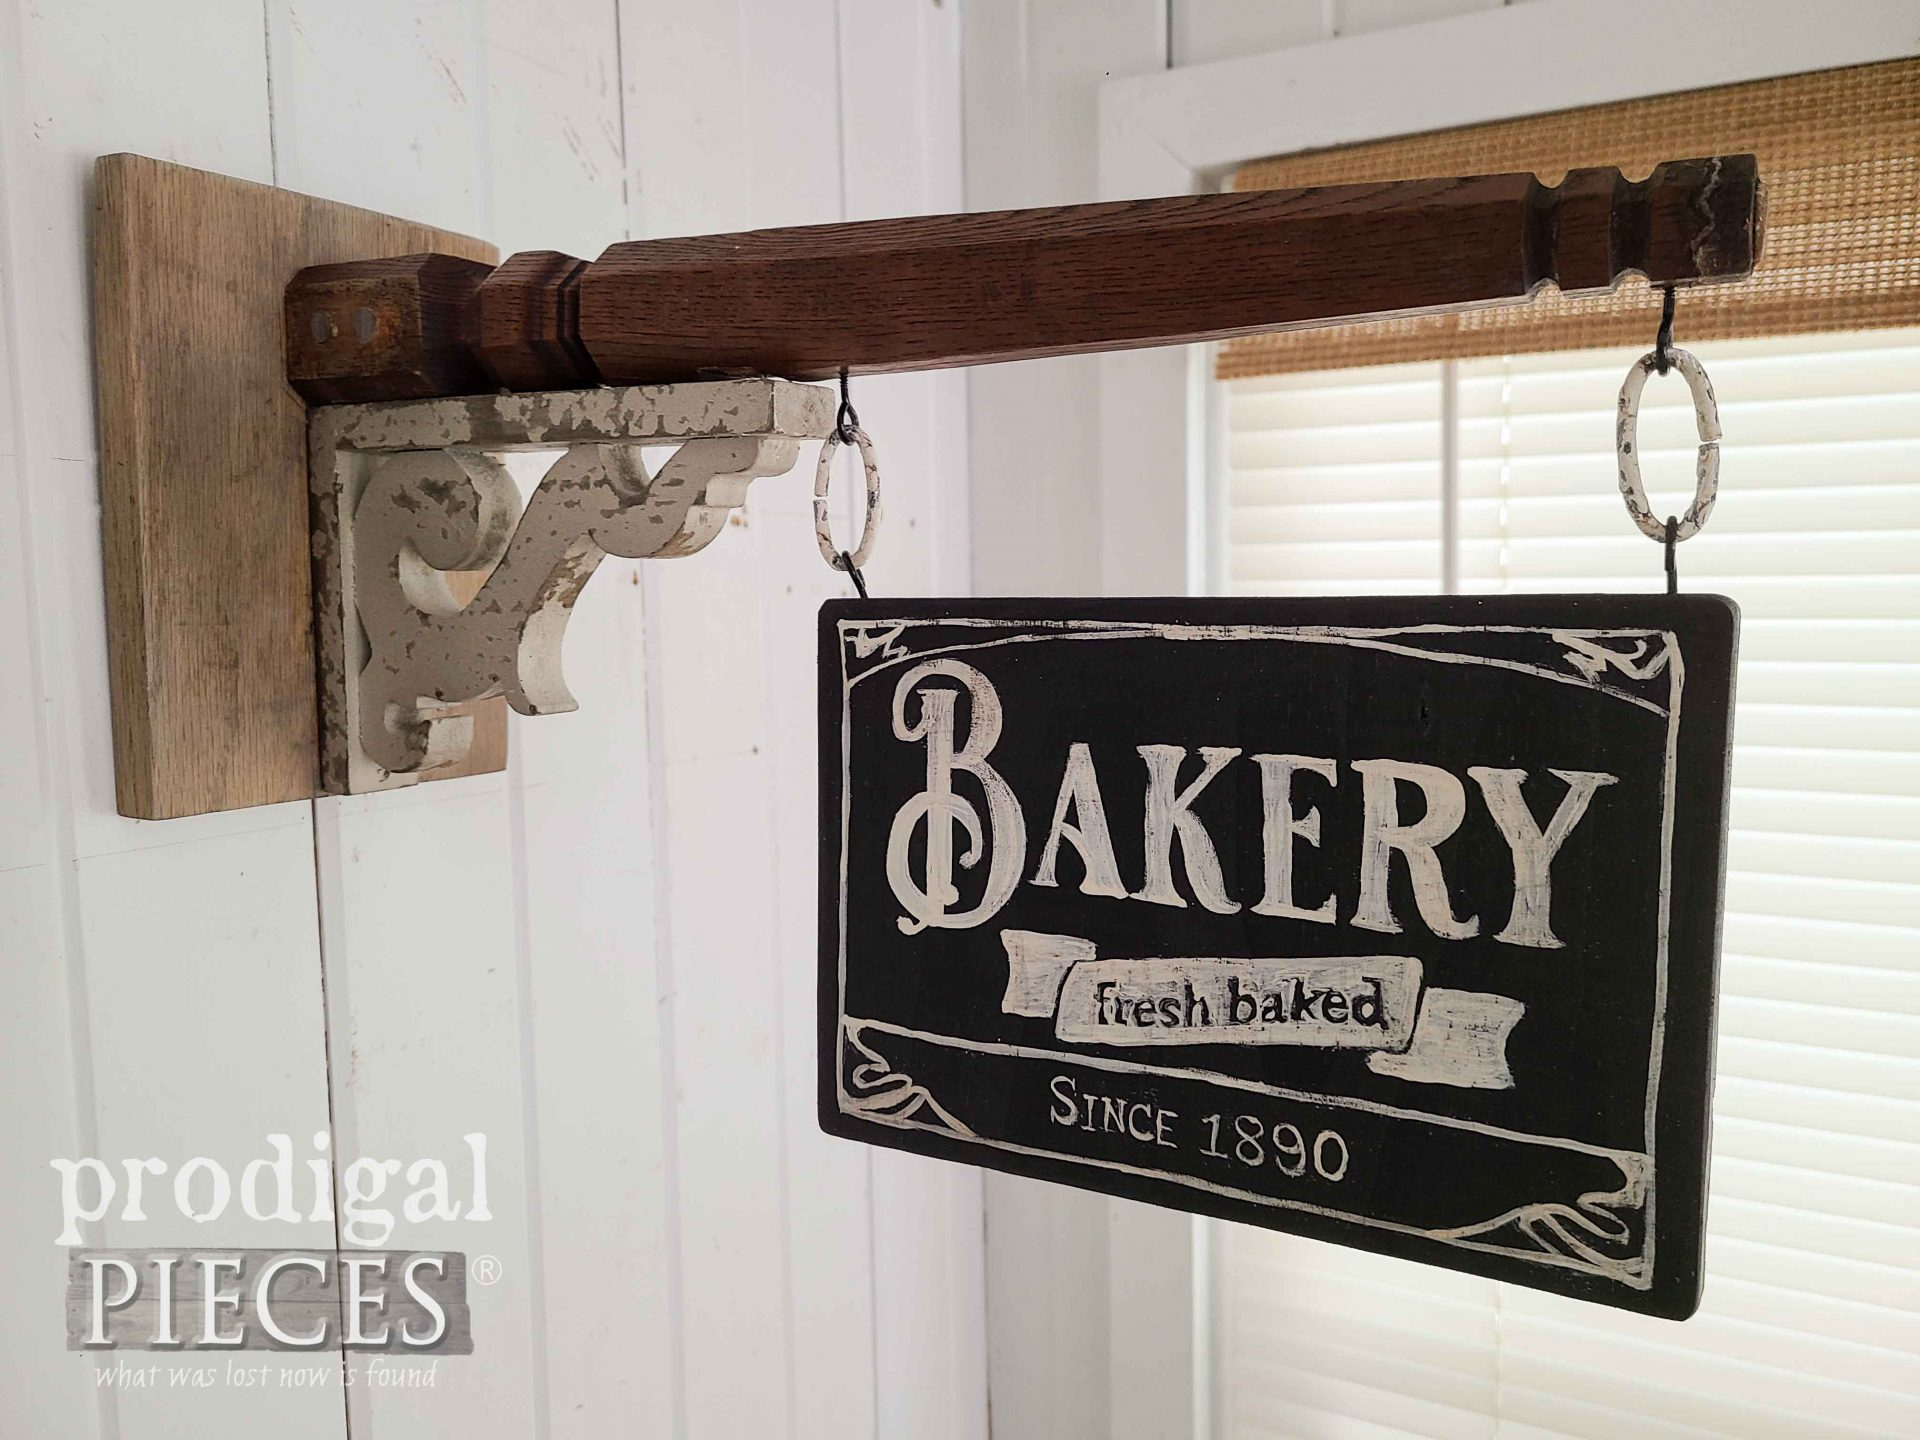 Hand-Painted Bakery Sign from Upcycled Chair Legs into Farmhouse Decor by Larissa of Prodigal Pieces | prodigalpieces.com